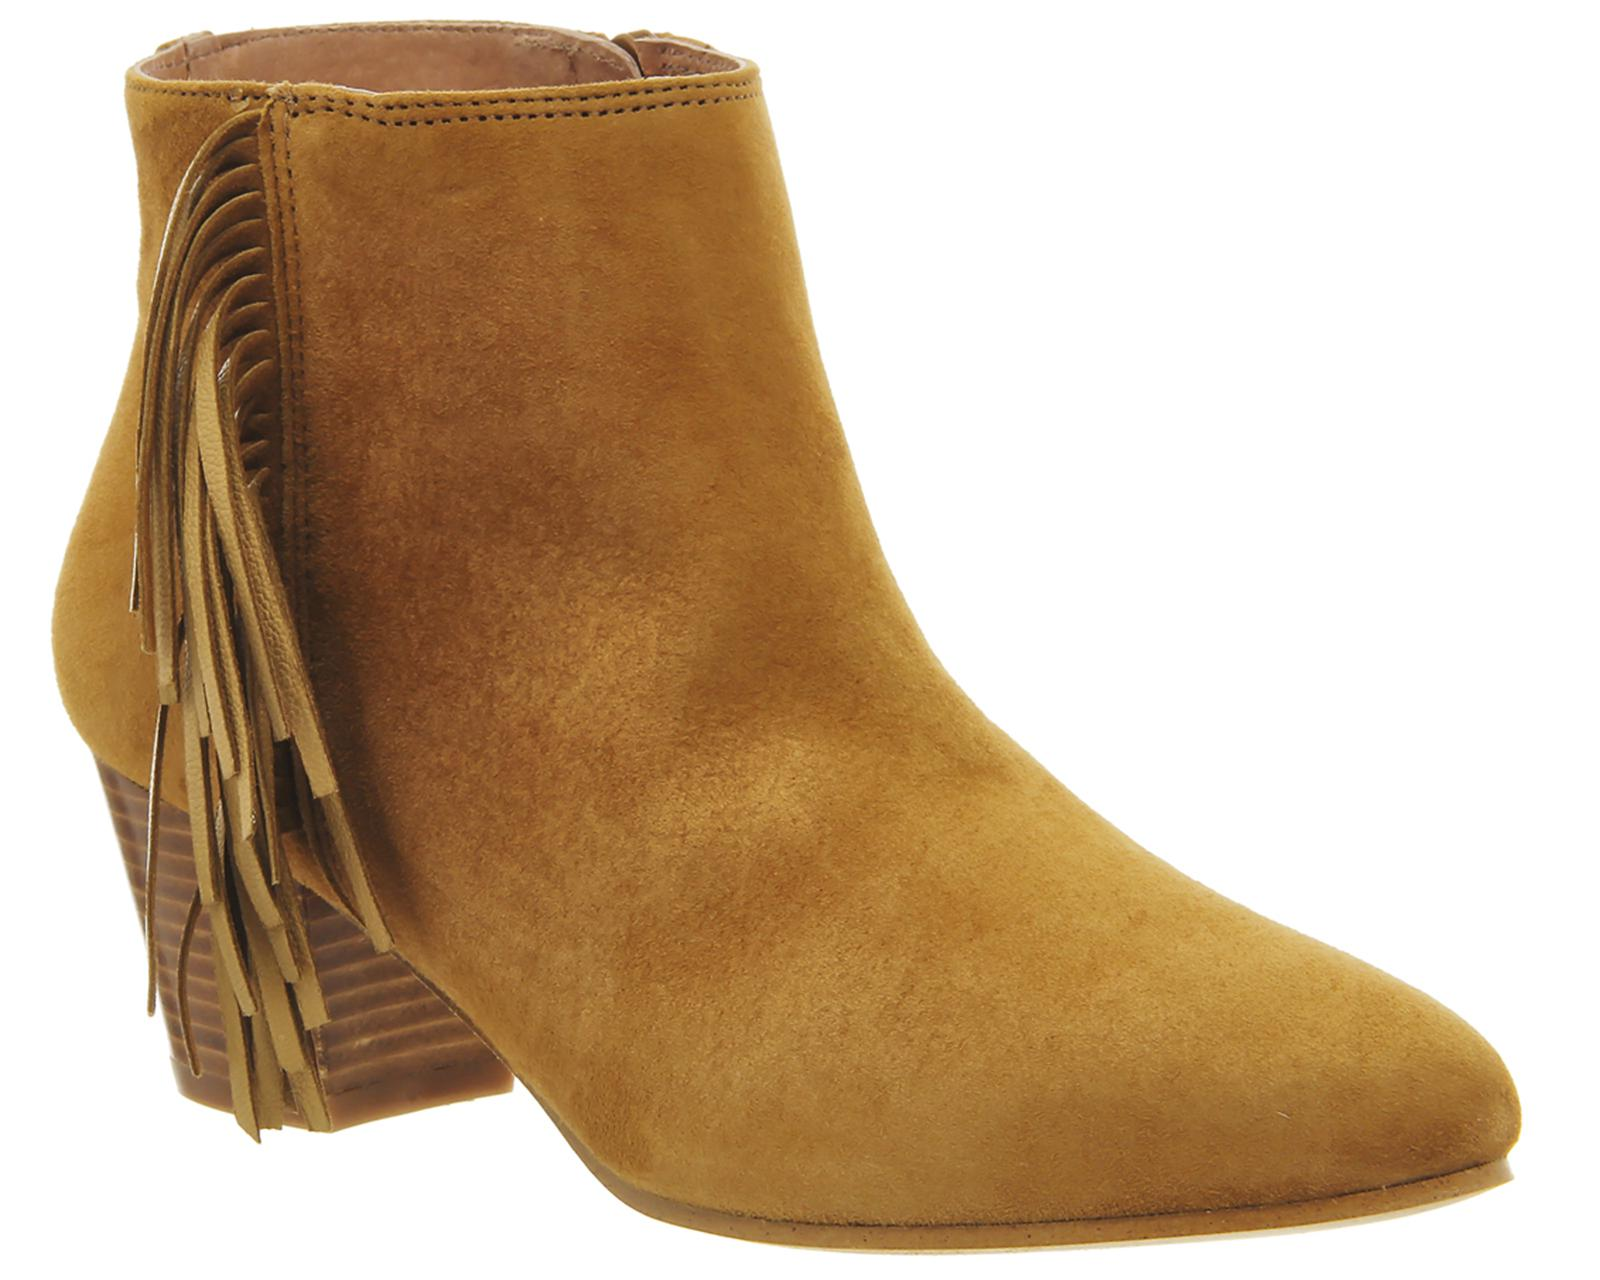 Suede Idaho Fringe Ankle Boots In Tan